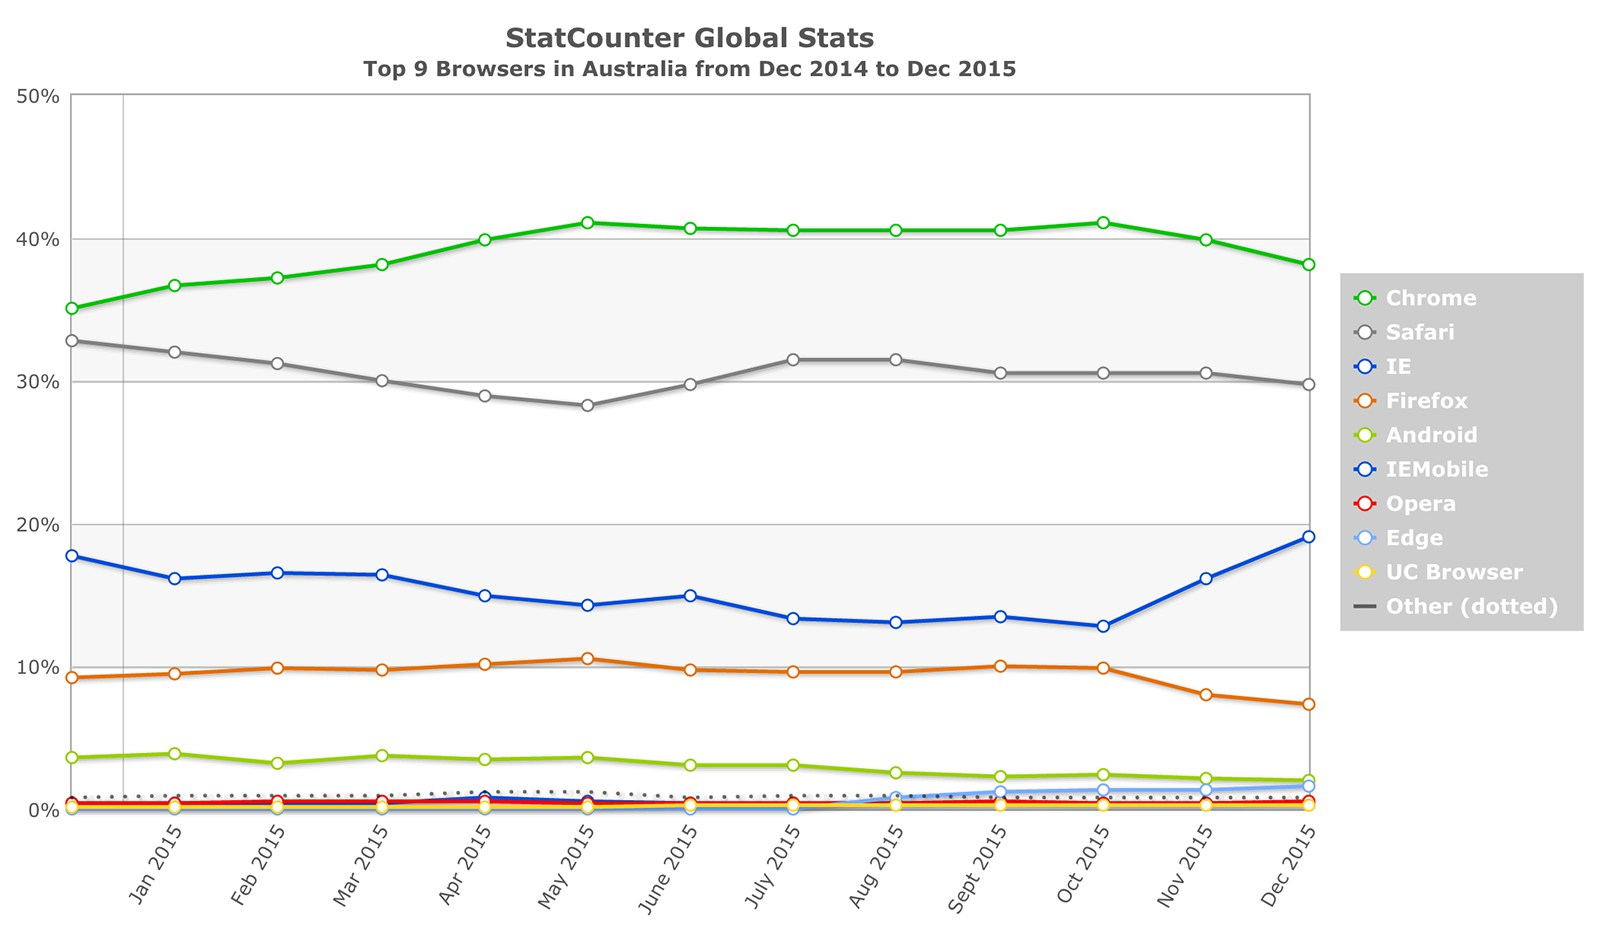 Top 9 browsers in Australia in 2015